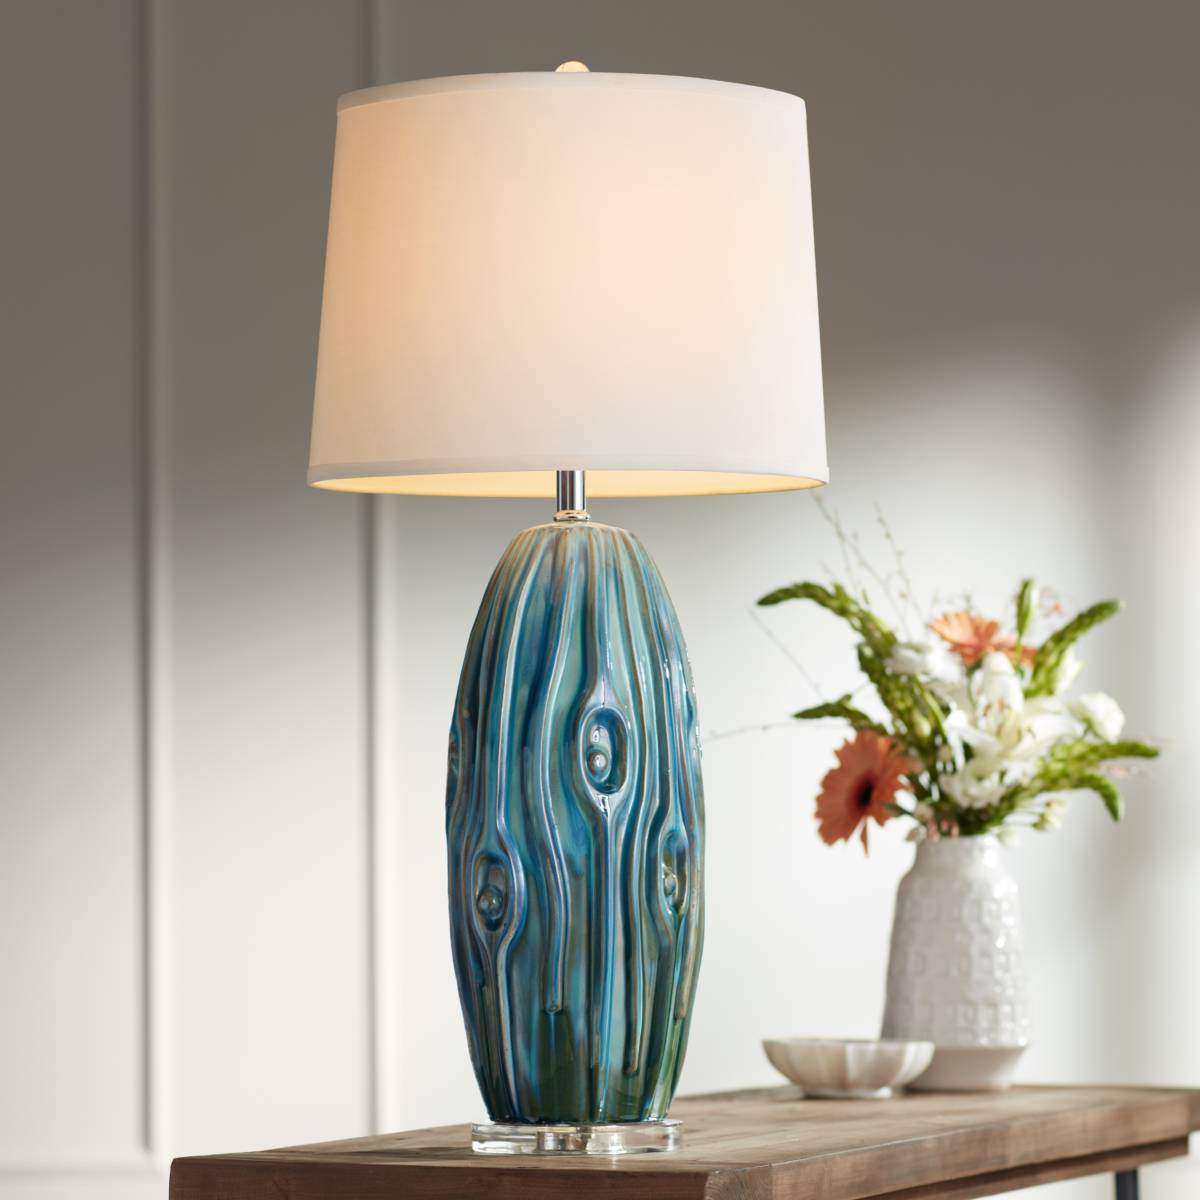 Lamp Plus Stores: Blue Table Lamps